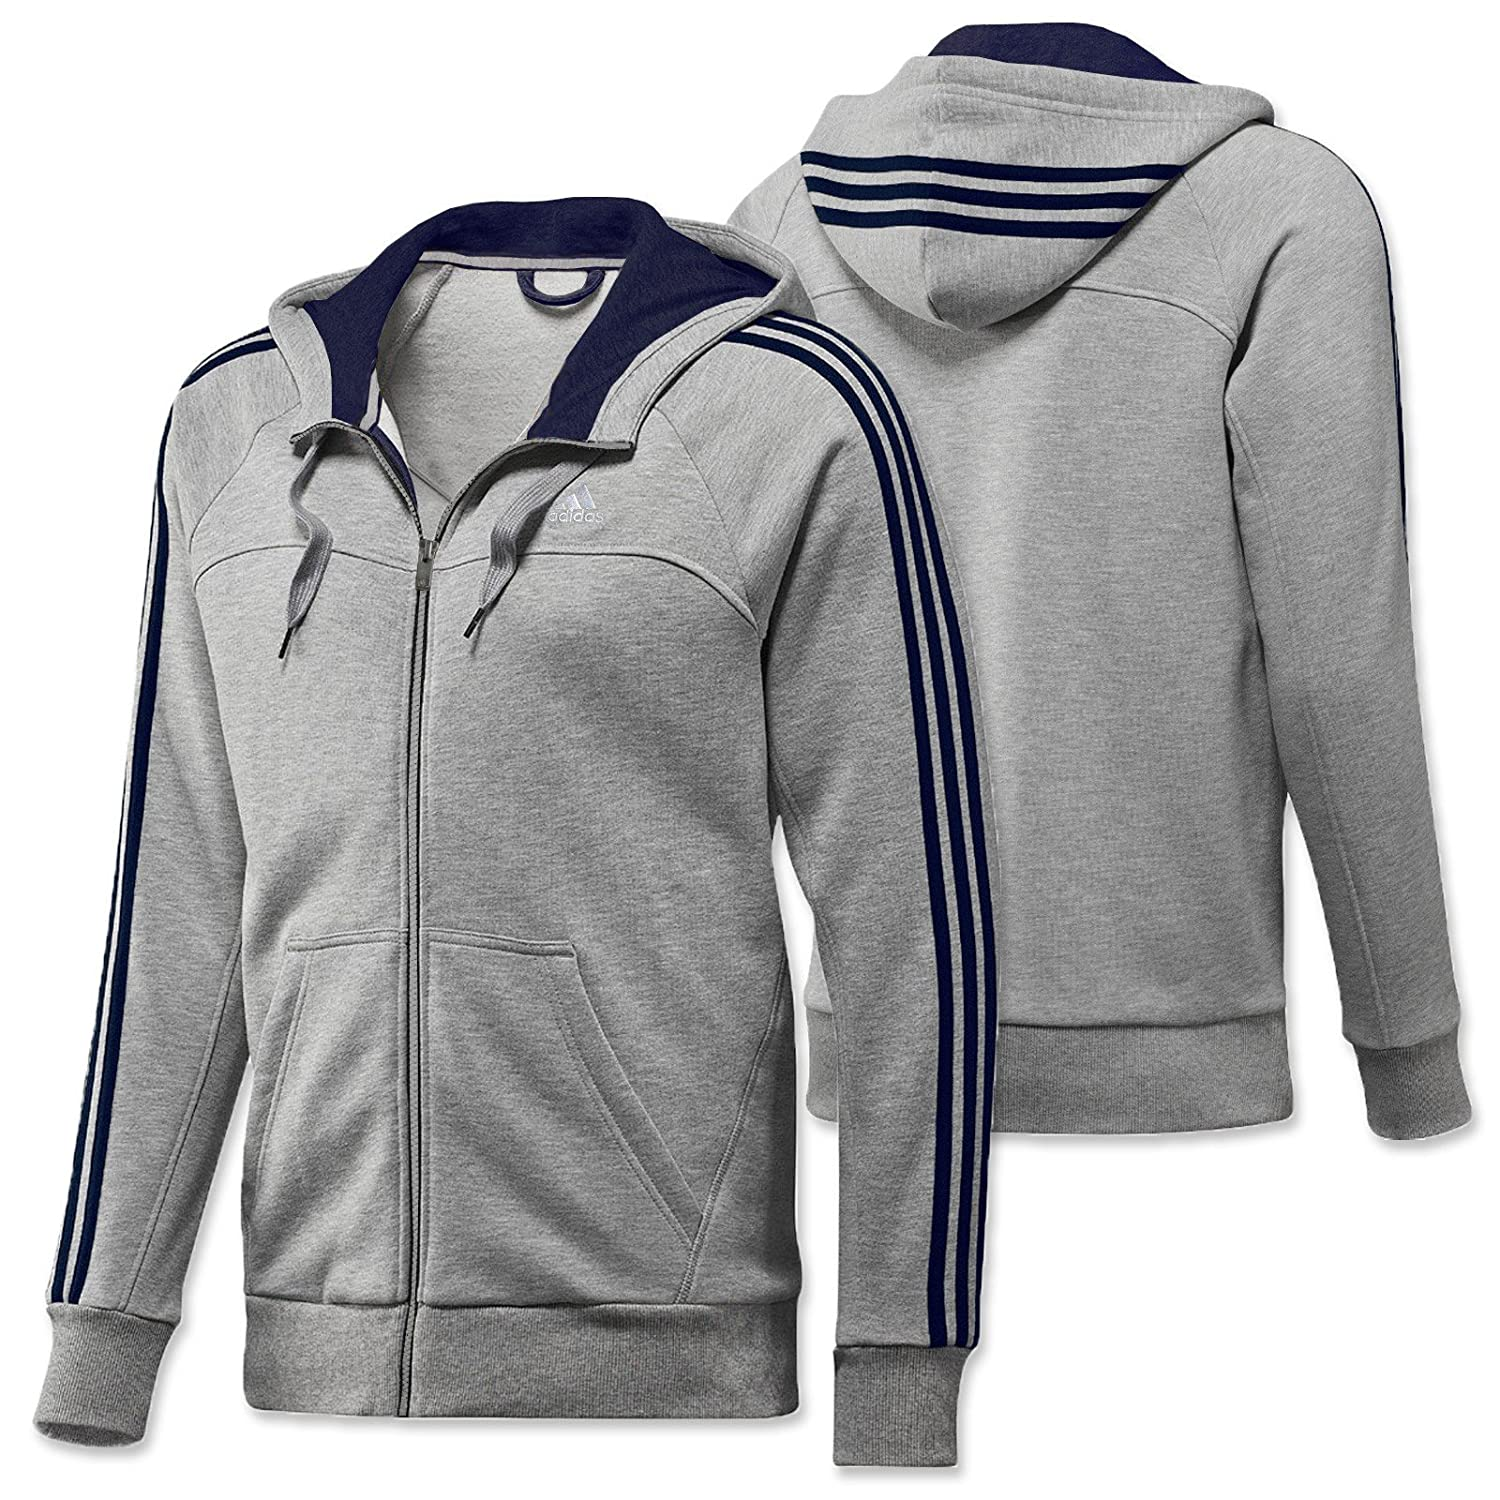 3925d3236f5f Adidas Men's Hooded Pullover men's Hooded Top Essentials 3 Stripe ...